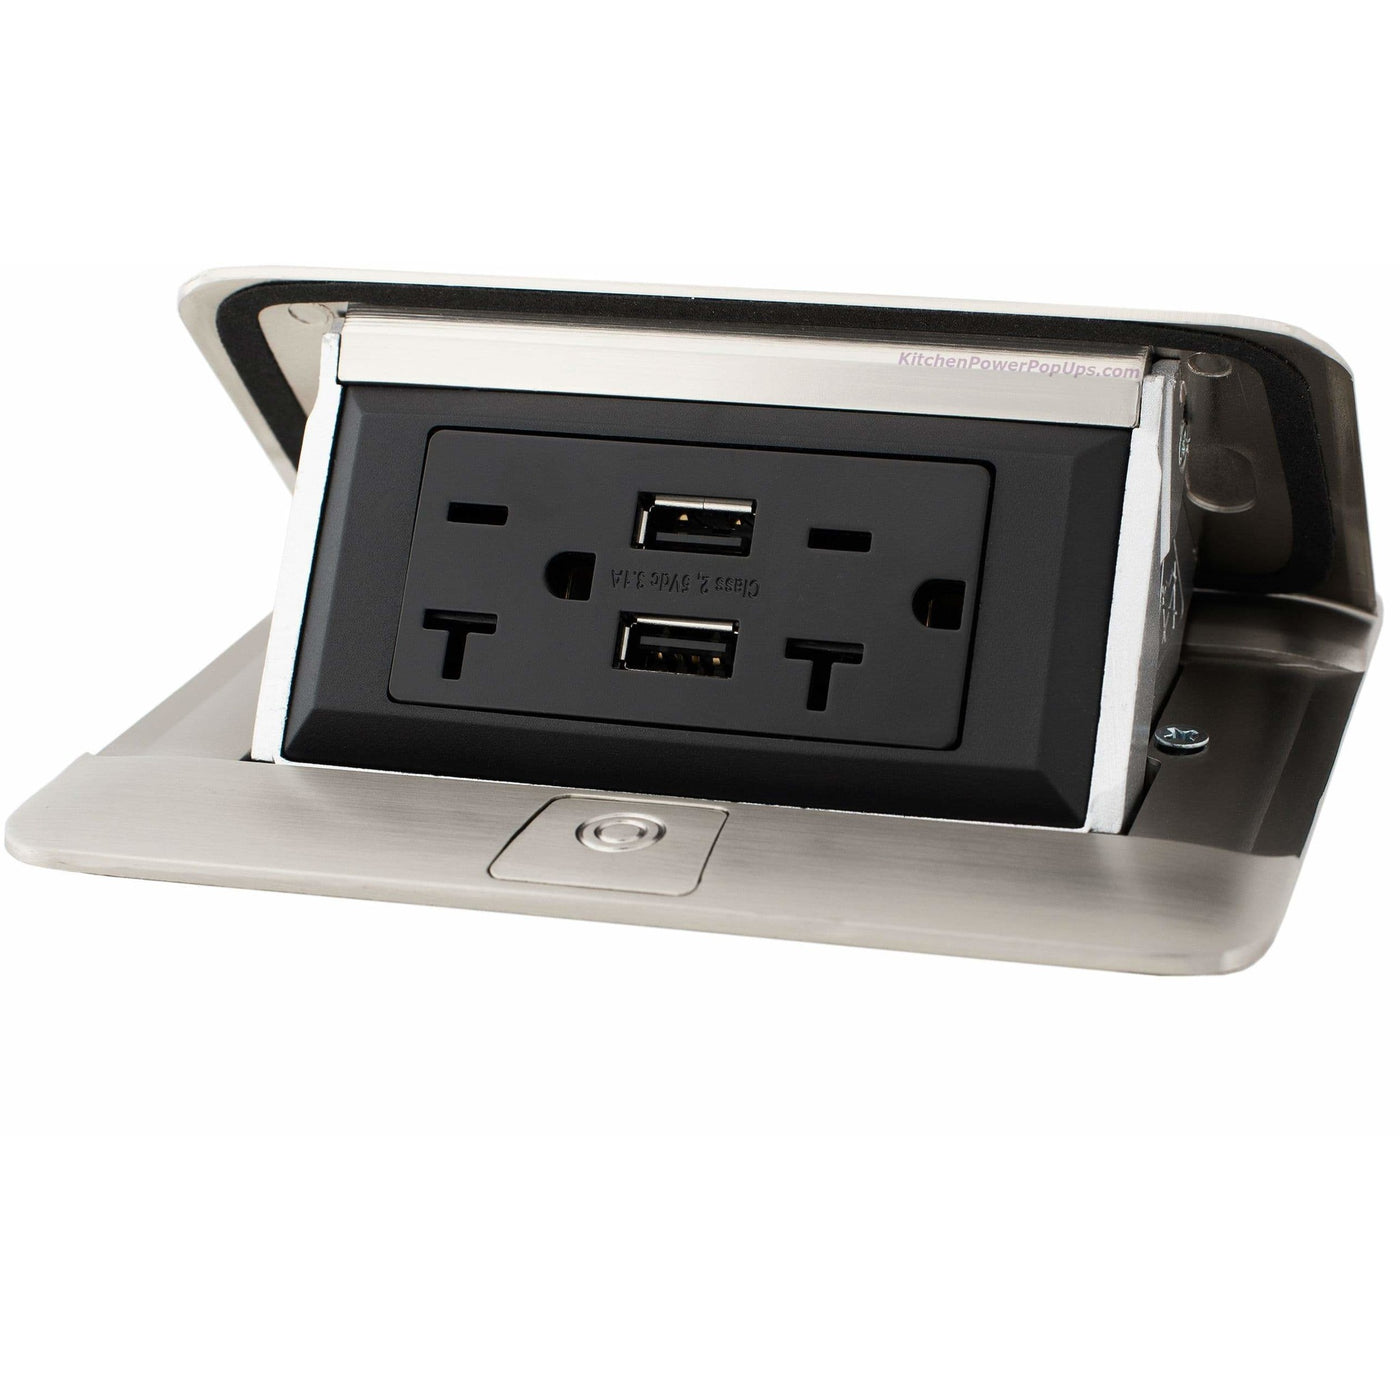 Legrand Wiremold Kitchen Counter Pop Up 20a Usb Plug Outlet